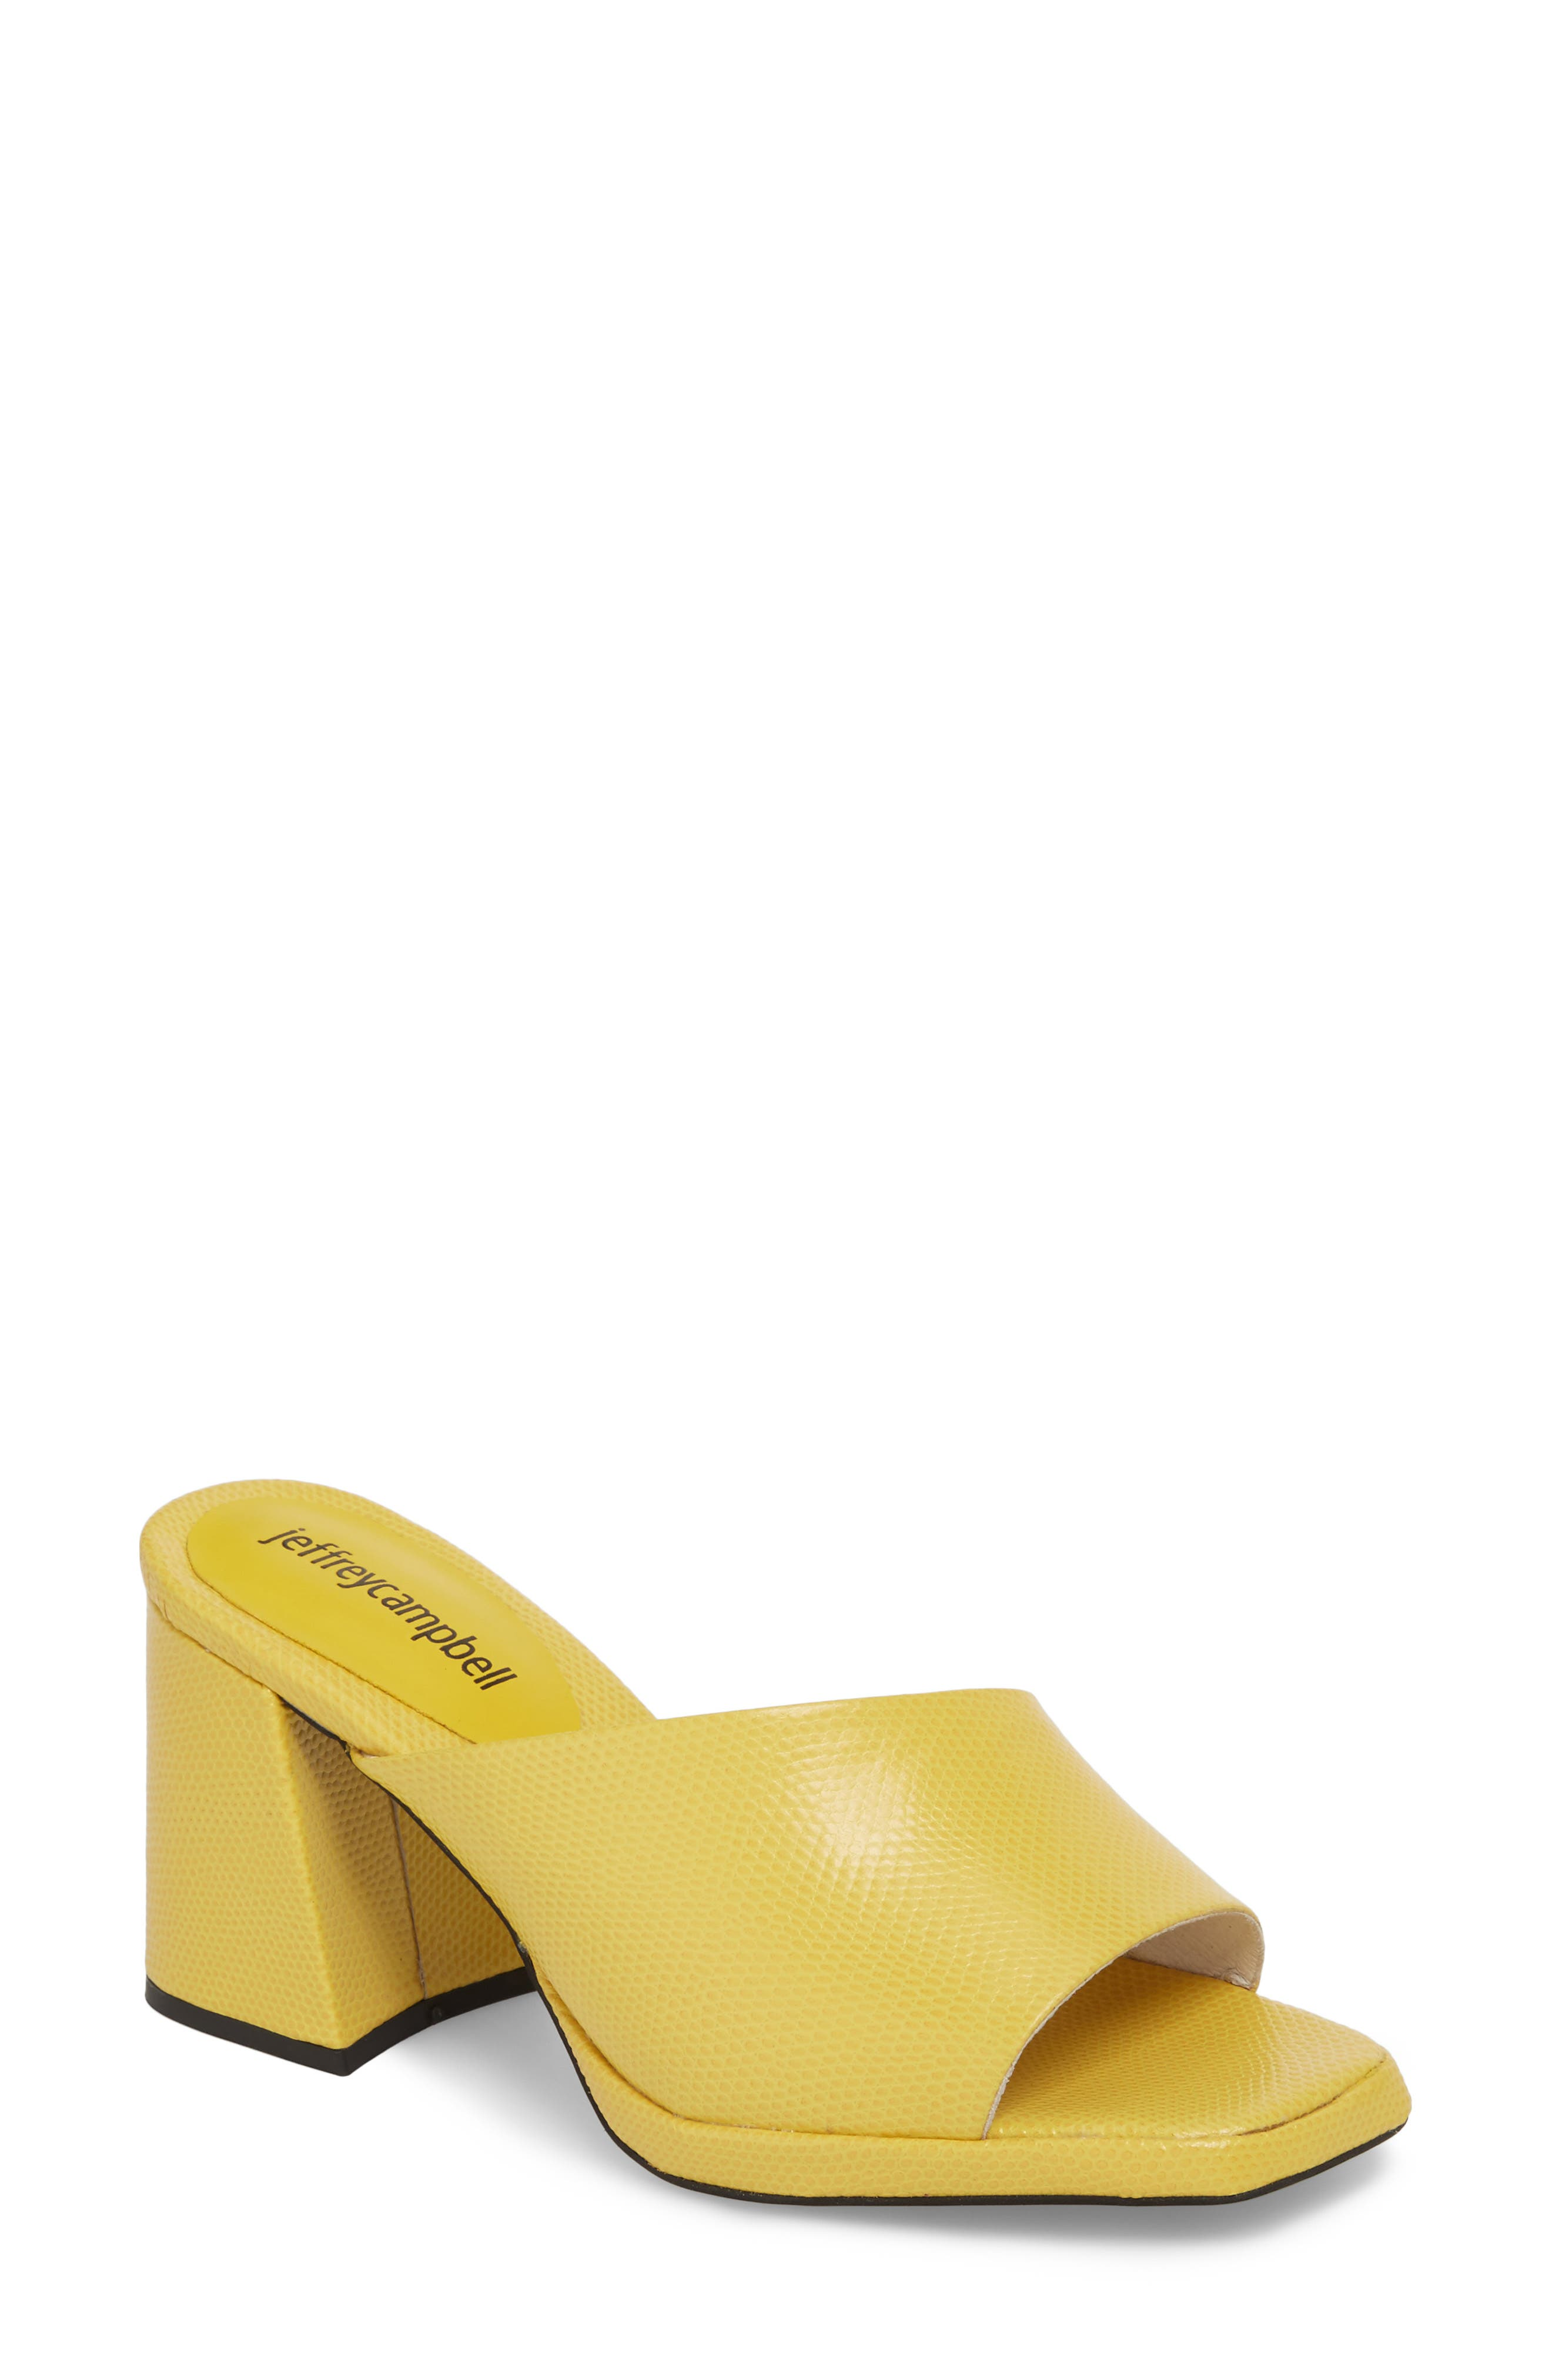 Suzuci Sandal,                         Main,                         color, Yellow Leather